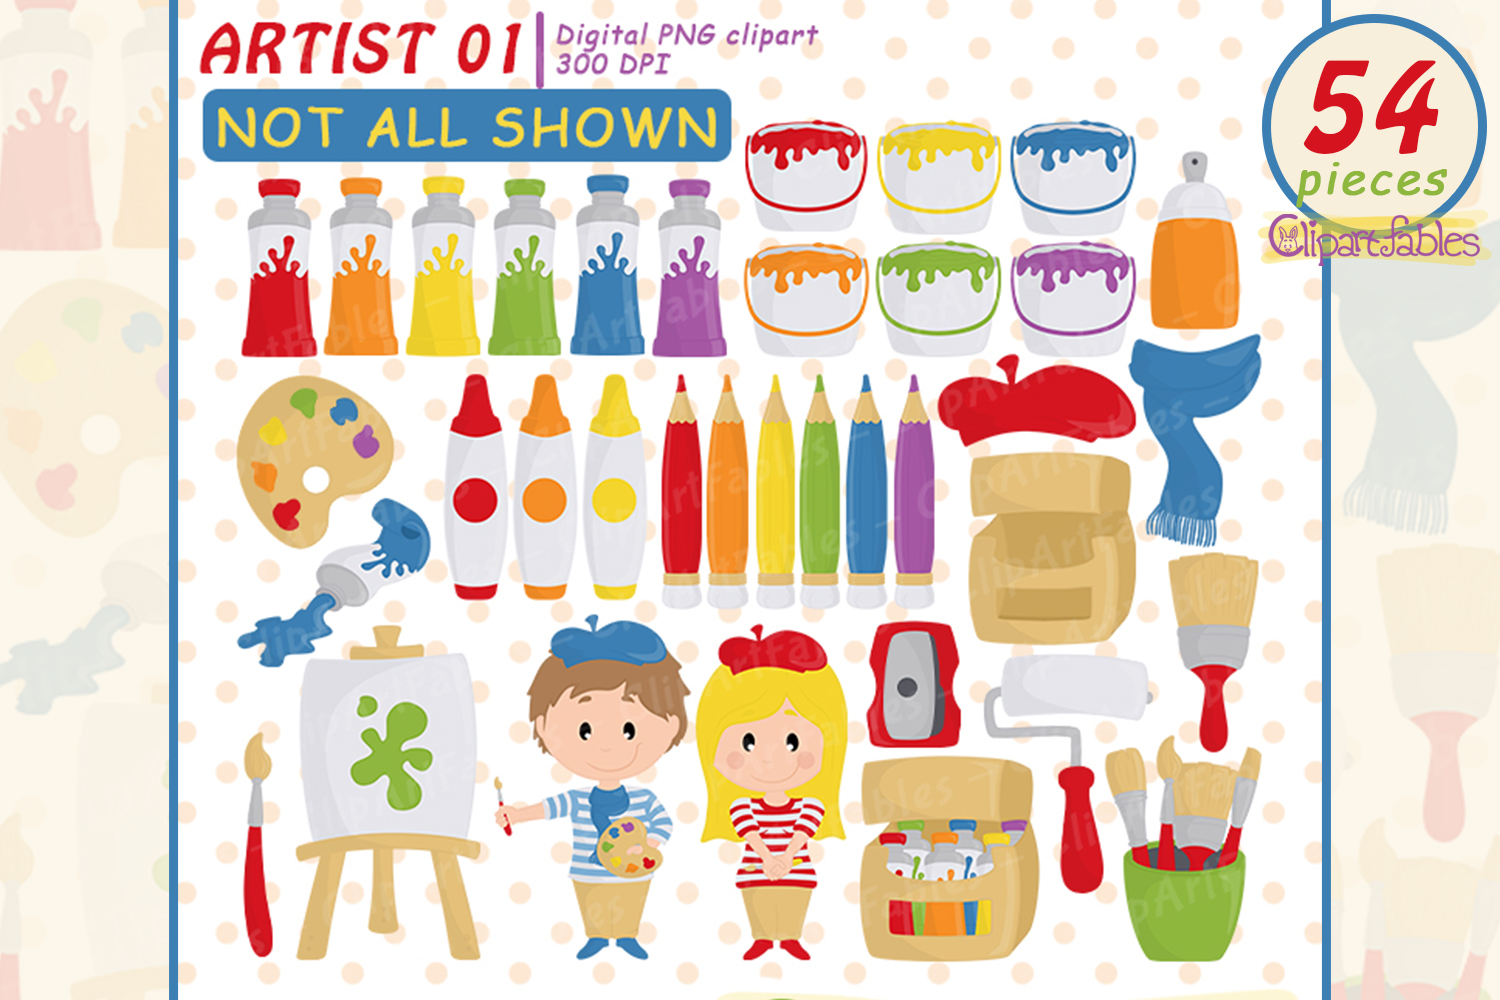 Artist clipart, Cute painting clip art, Colorful art example image 1